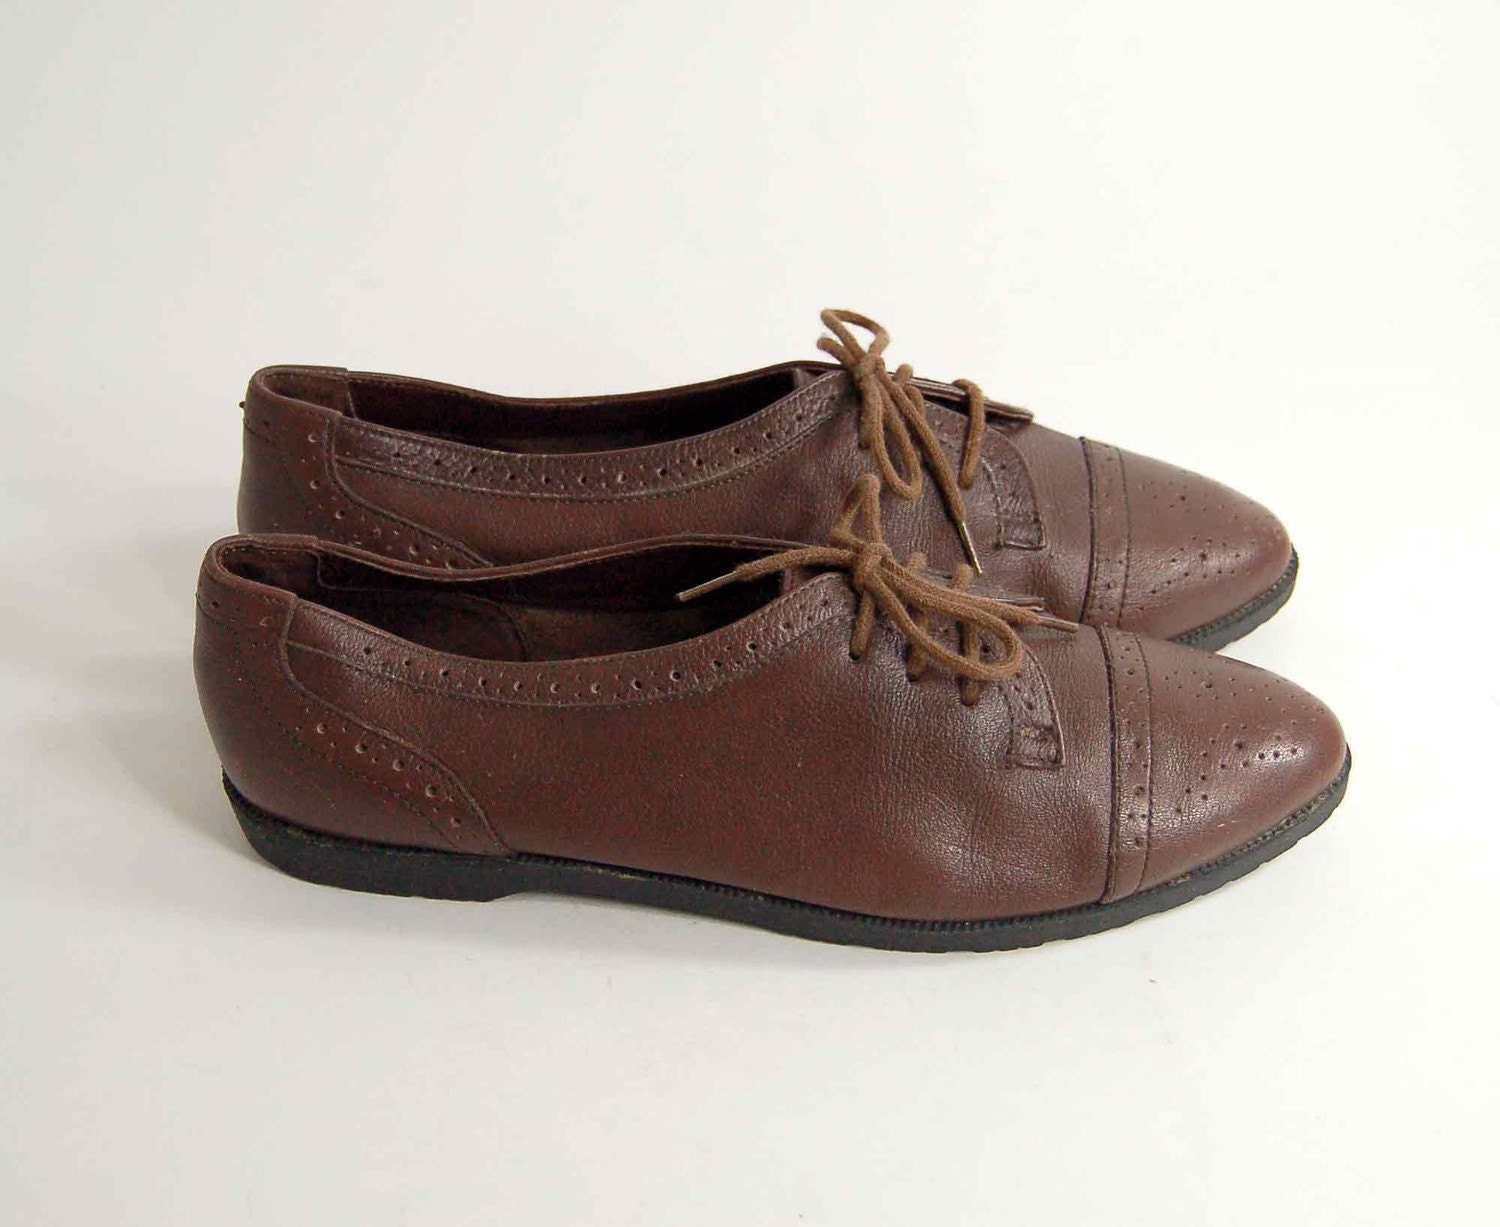 Size 7 Brown LACE UP Leather Minimalist Oxford Brogue Flats